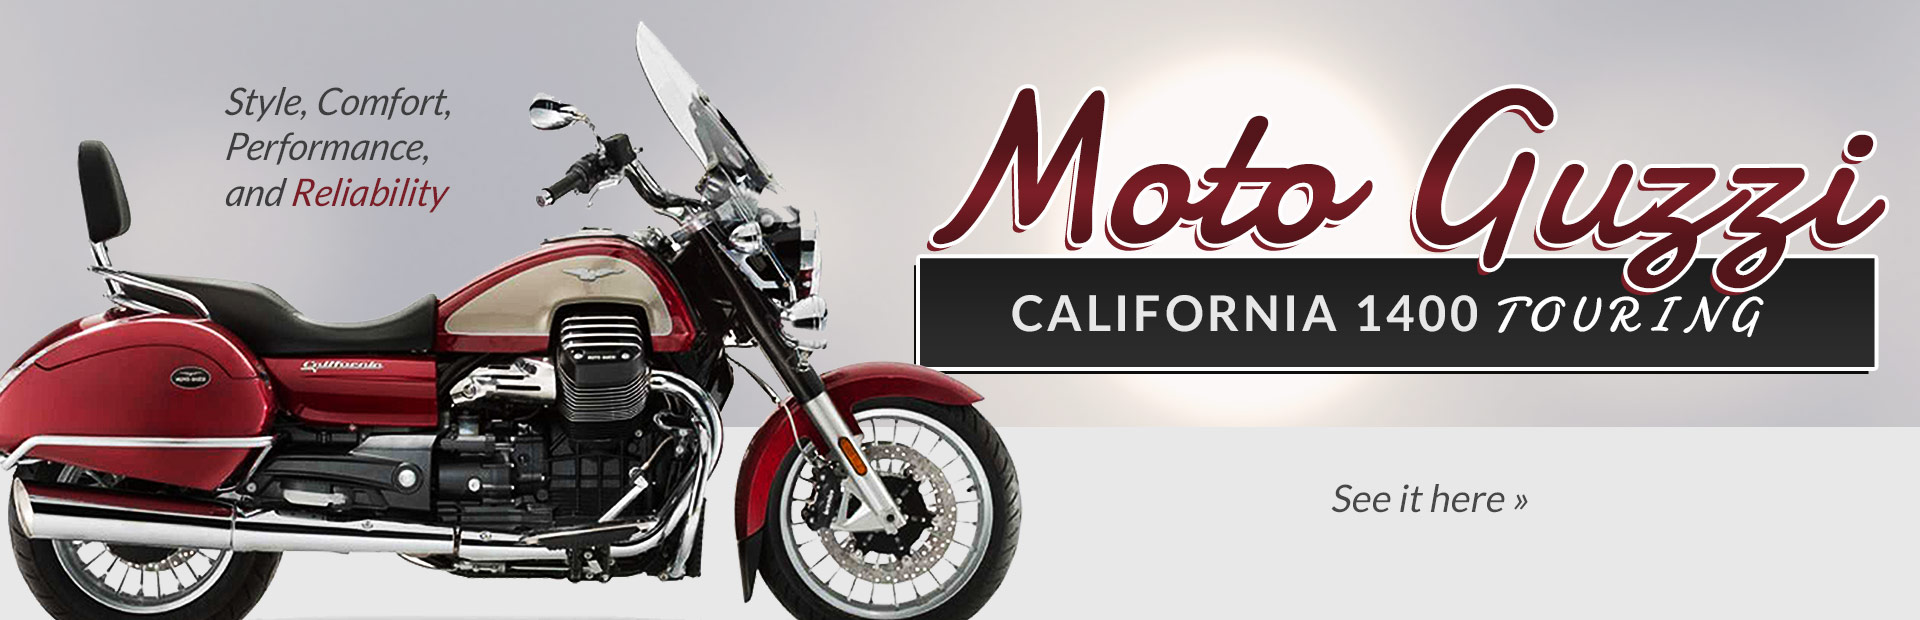 Moto Guzzi California 1400 Touring: Click here to view the model.